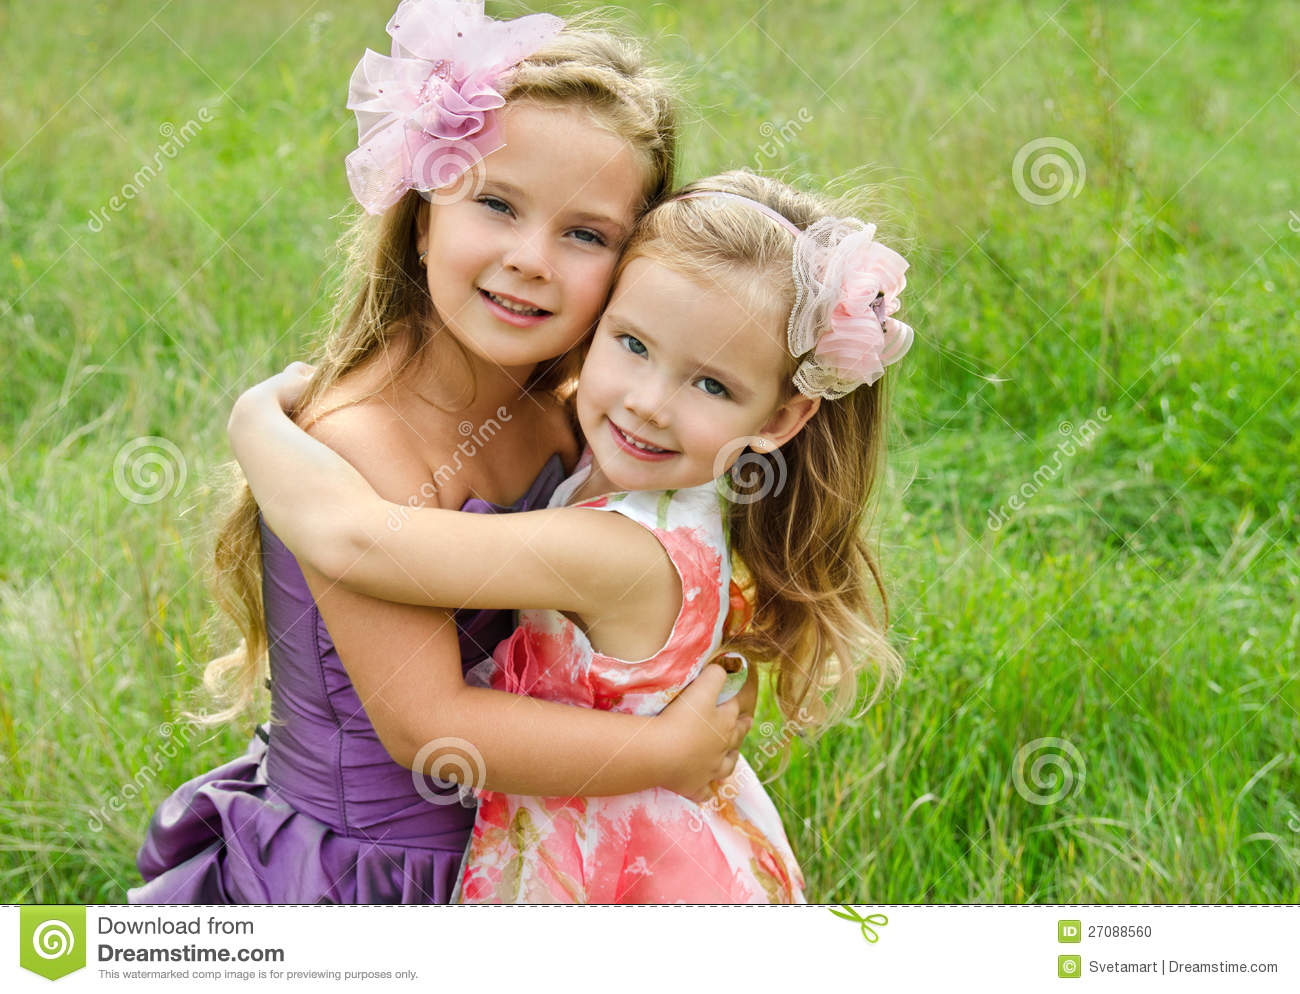 portrait of two embracing cute little girls stock photo - image of